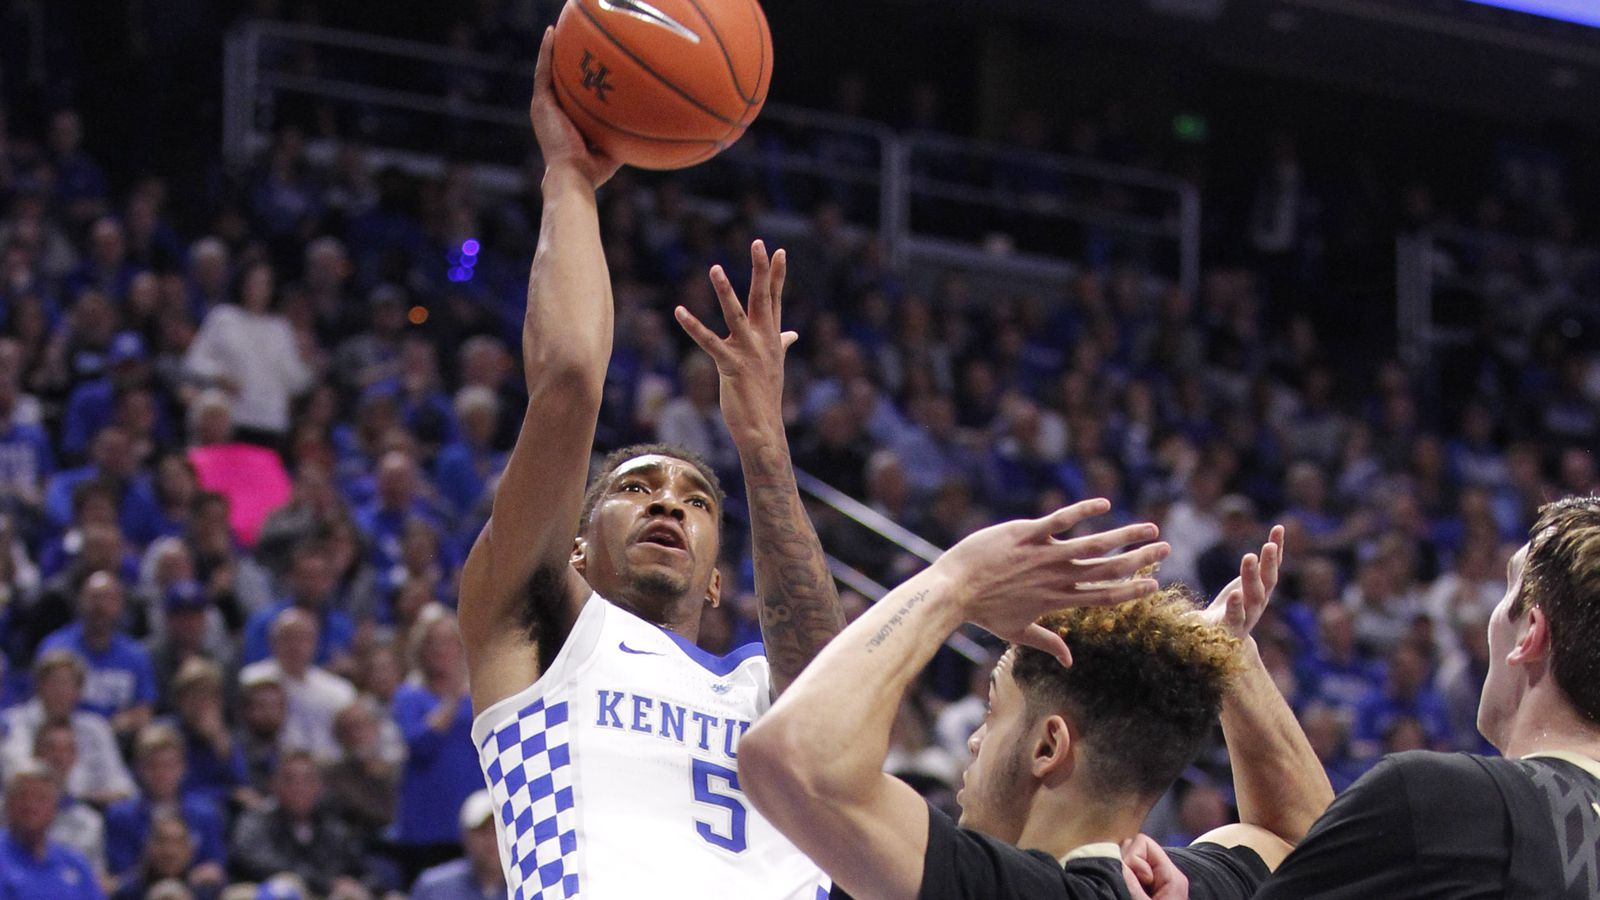 Kentucky Basketball Highlights And Box Score From Historic